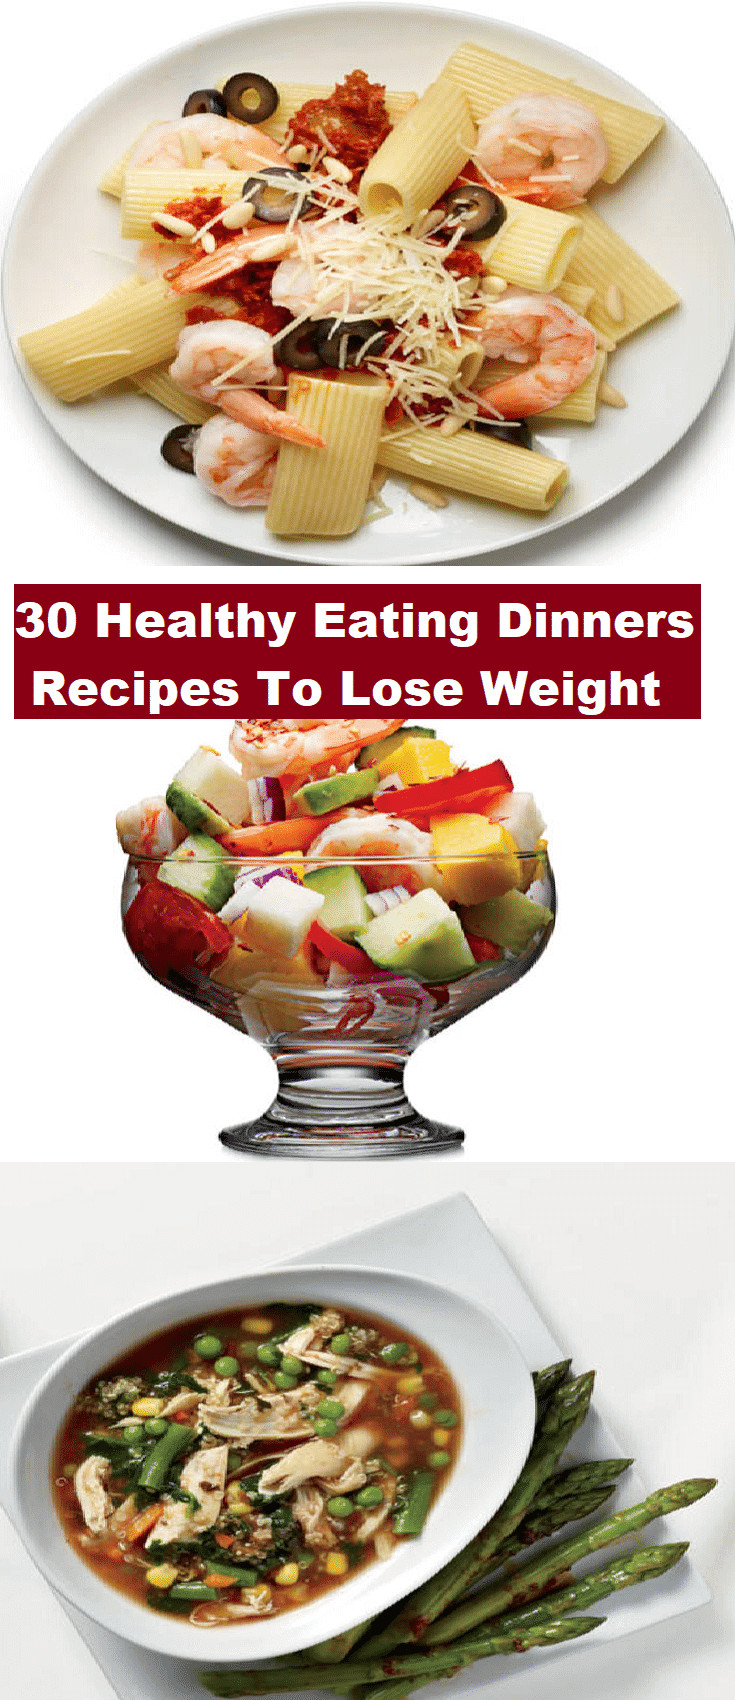 Healthy Weight Loss Dinners  30 Healthy Eating Dinners Recipes To Lose Weight Healthy